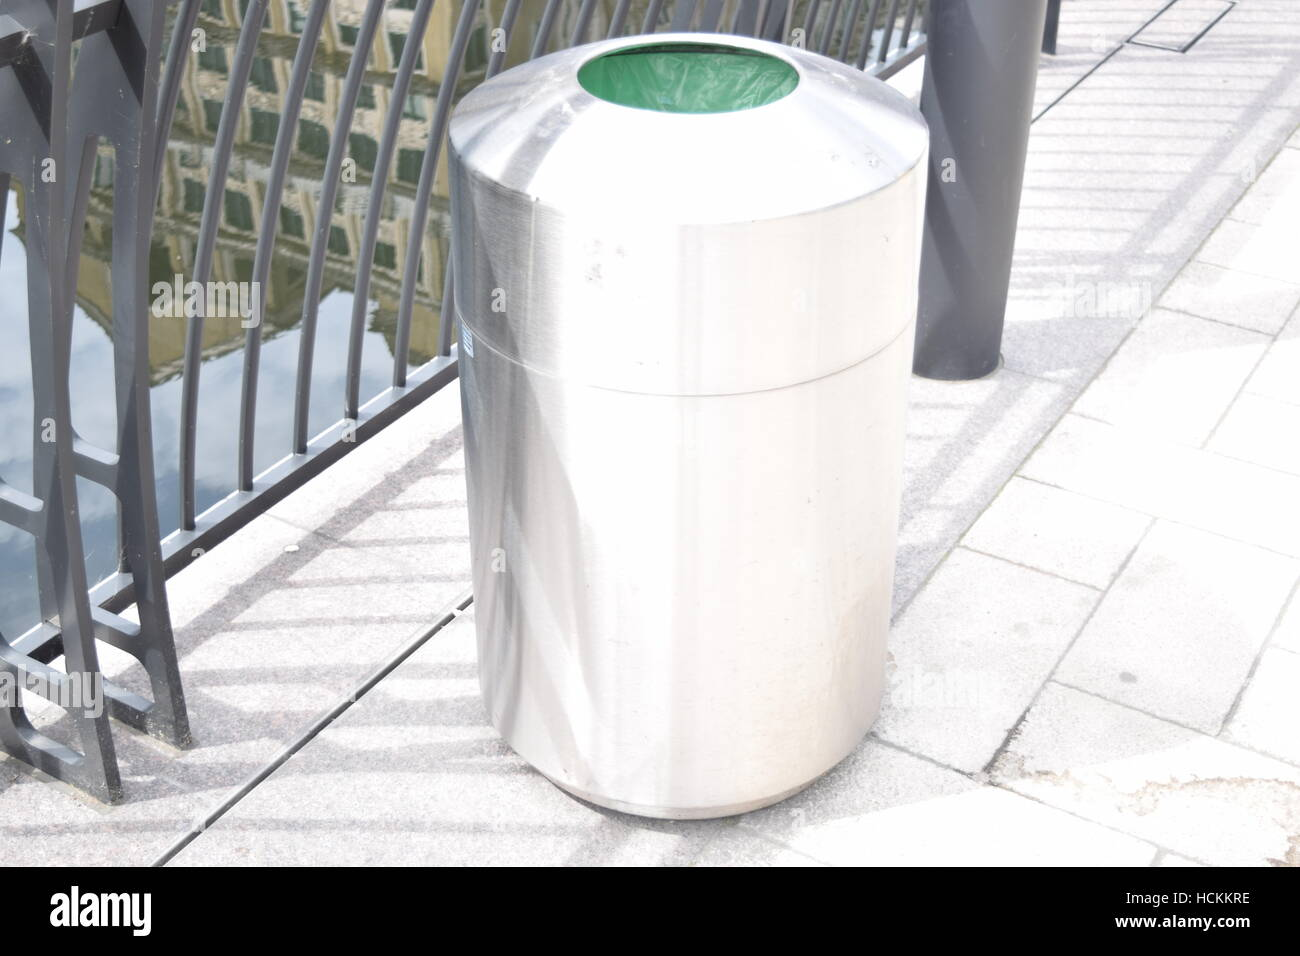 Modern metallic trash bin on the road side - Stock Image